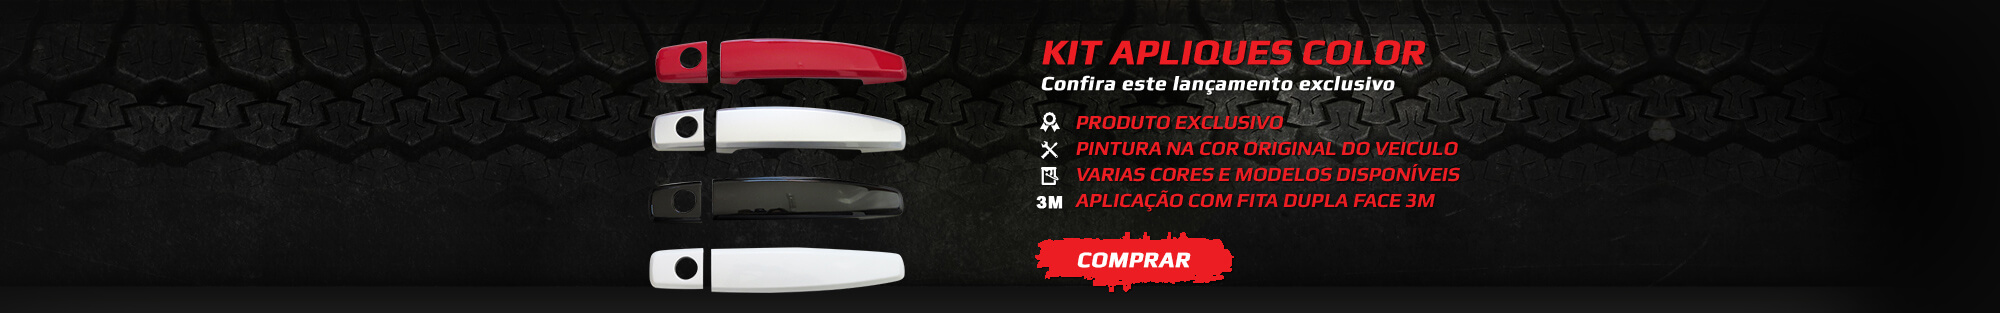 Kit apliques color - Confira este lan�amento exclusivo